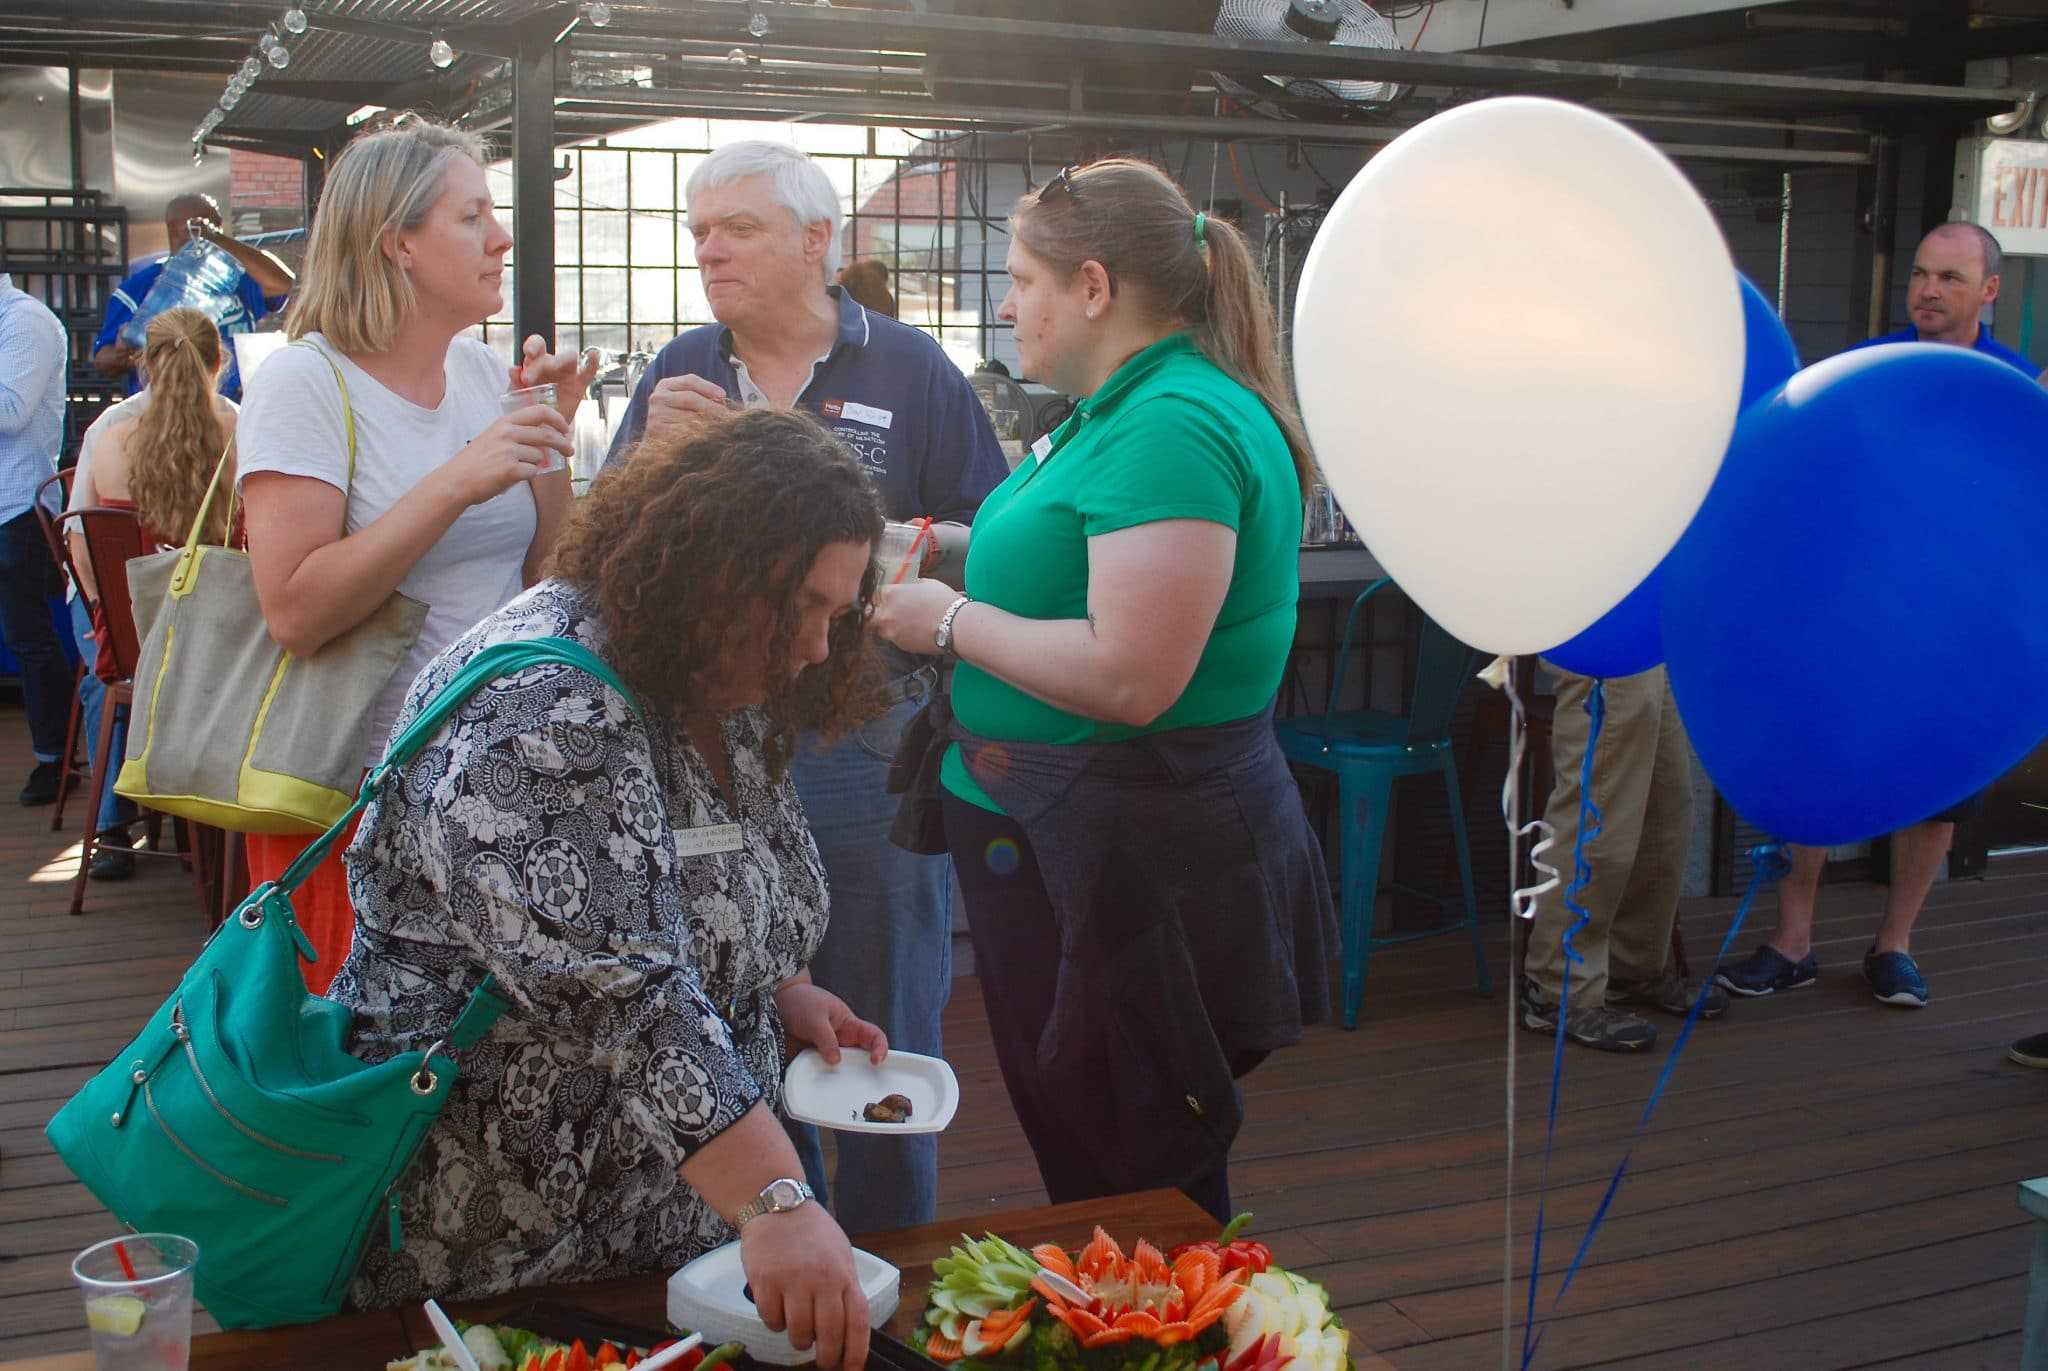 New nonprofit Silver Spring Cares officially launched - Silver Spring Cares, a new local nonprofit organization, officially launched yesterday with a party at Kaldi's Social House.